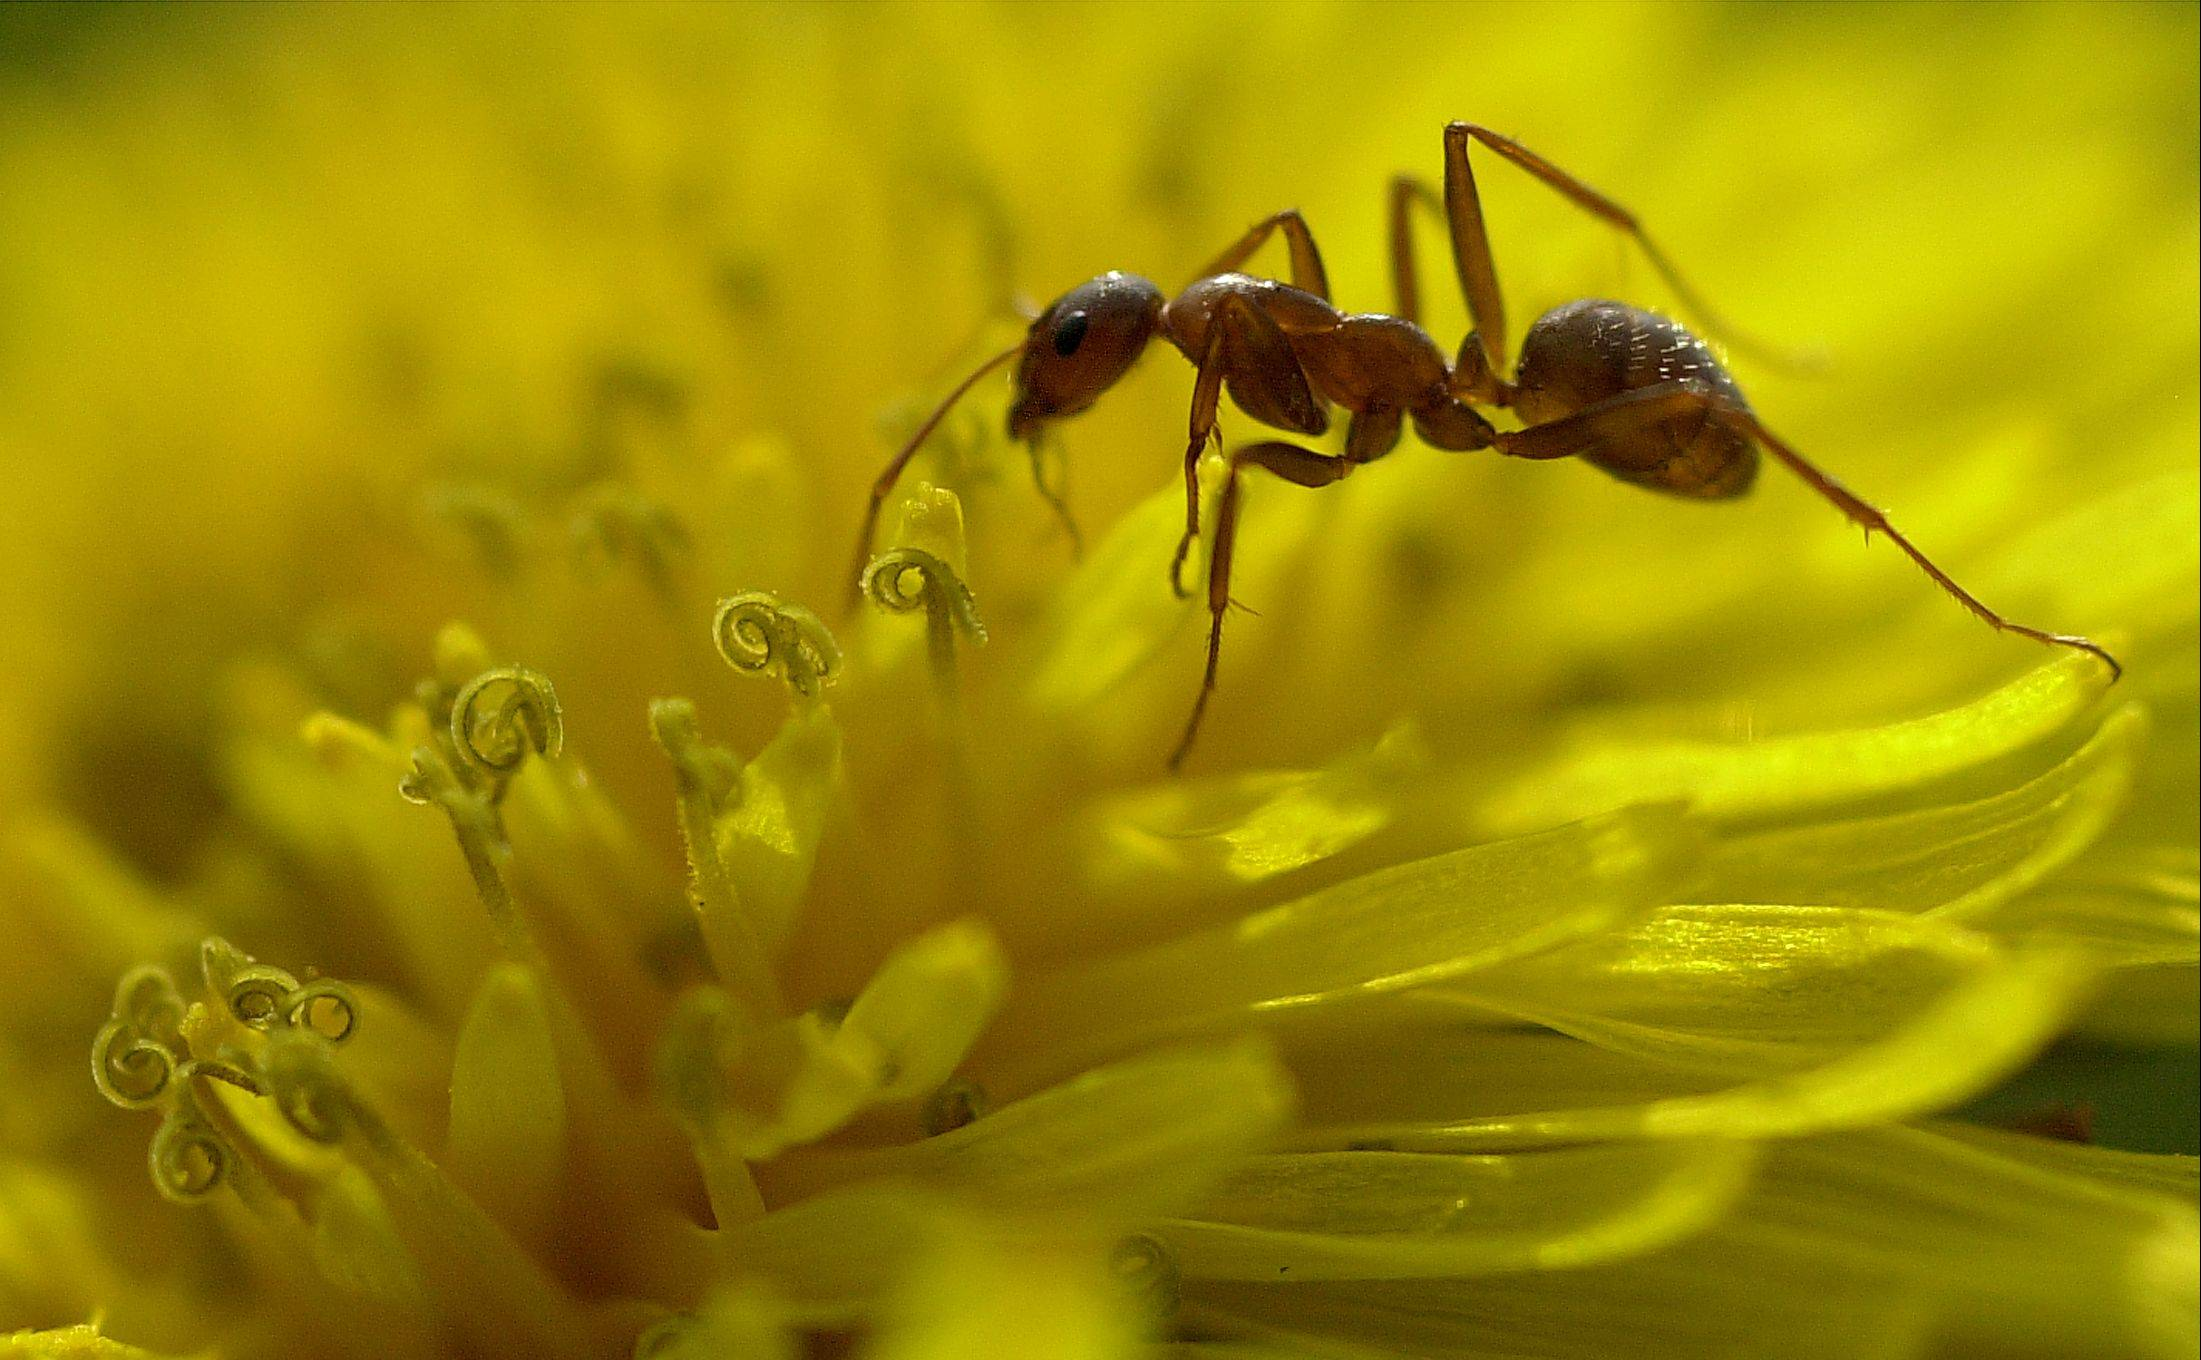 Above, a field ant harvests nectar from a dandelion.